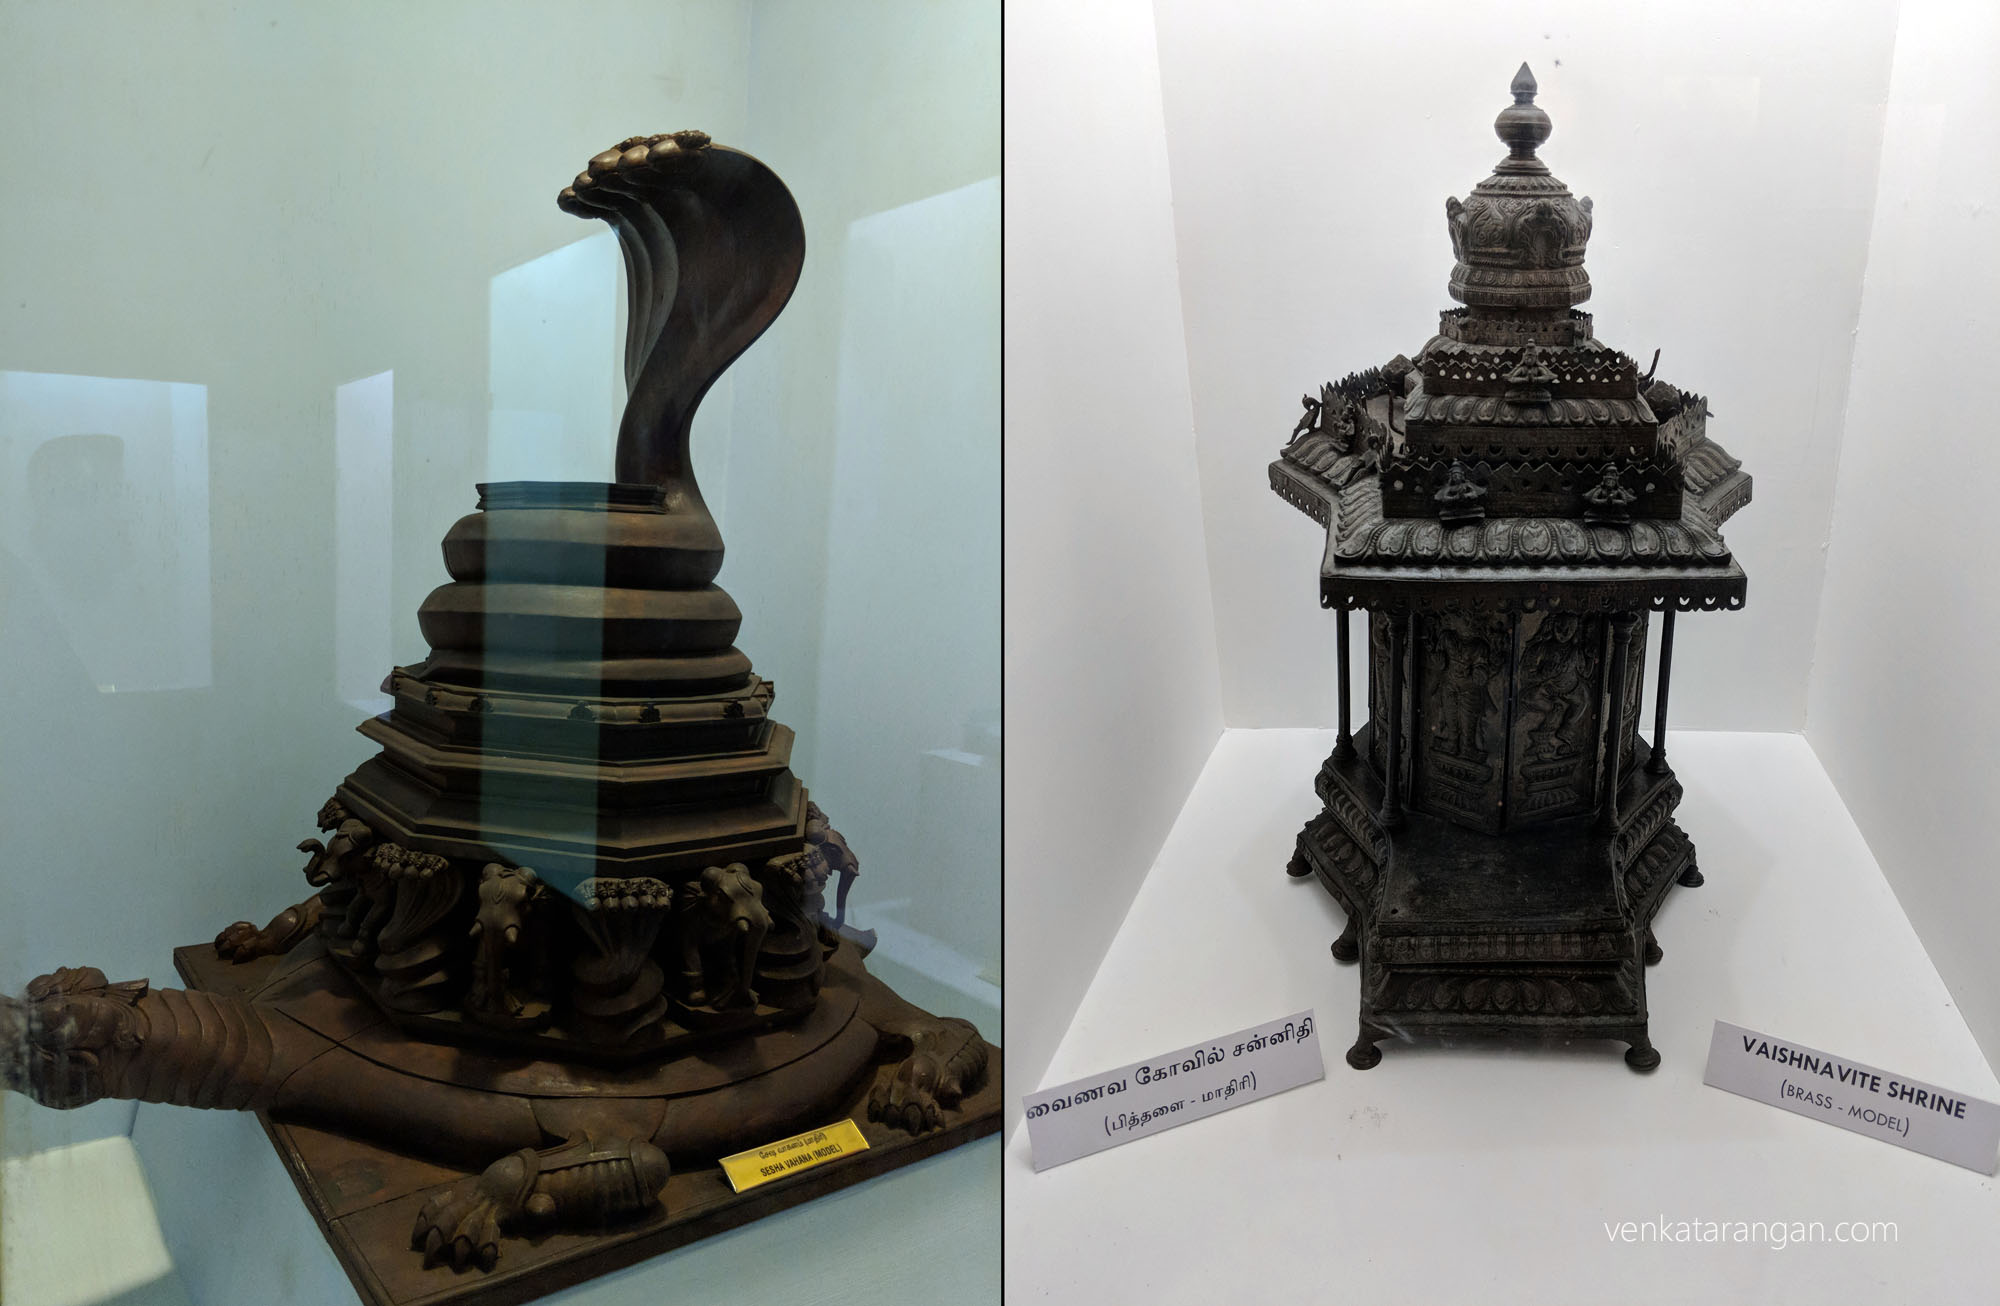 Left-Sesha Vahana model (சேஷ வாகனம்). The shape of a snake, vehicle of Lord Vishnu during festivals. Right-Vaishnavite Shrine, model made of Brass (வைணவ கோவில் சந்நித, பித்தளை)